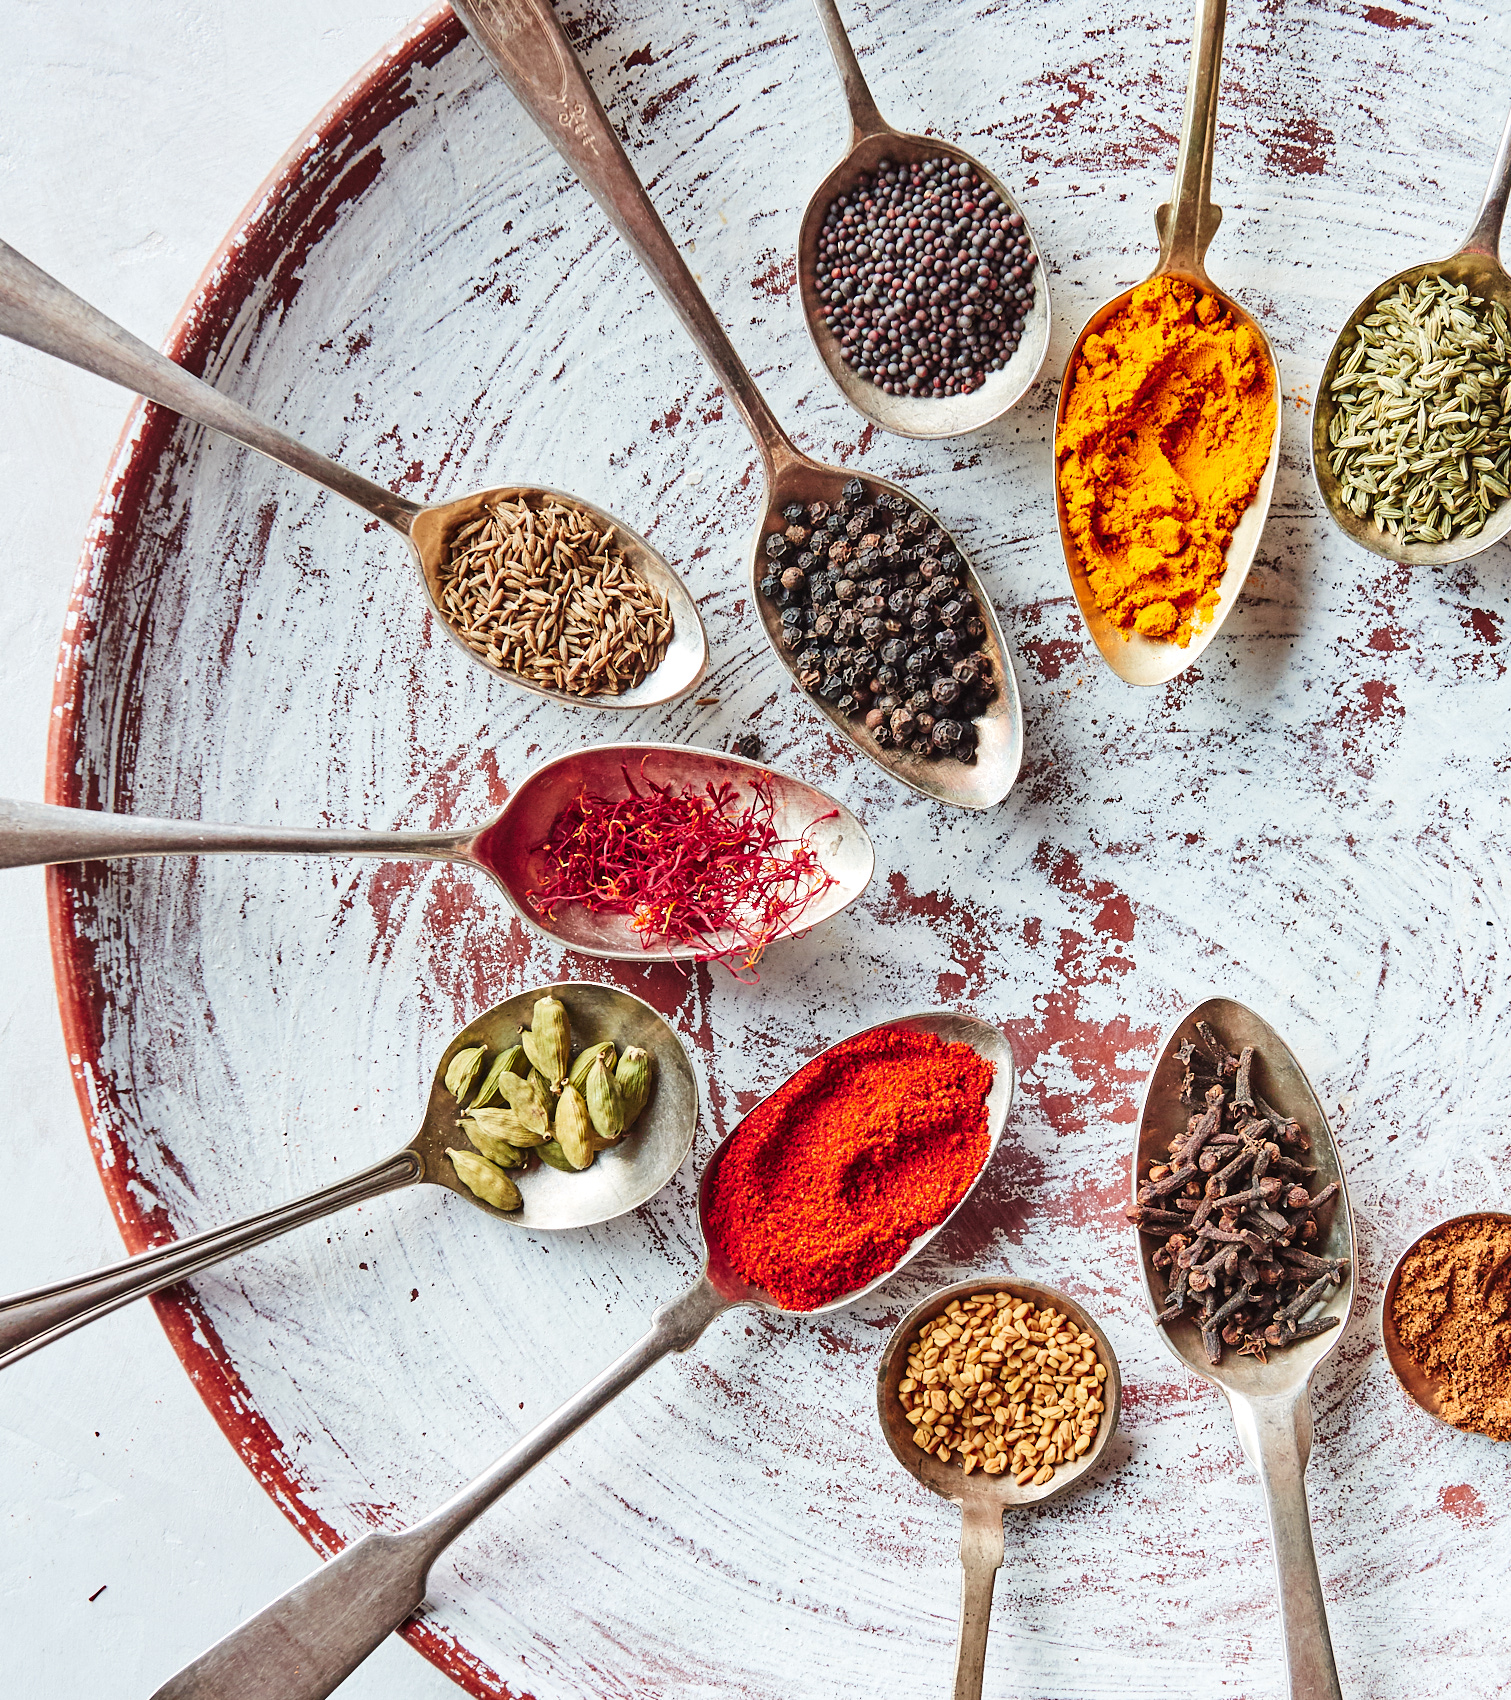 Spices_0050.jpg